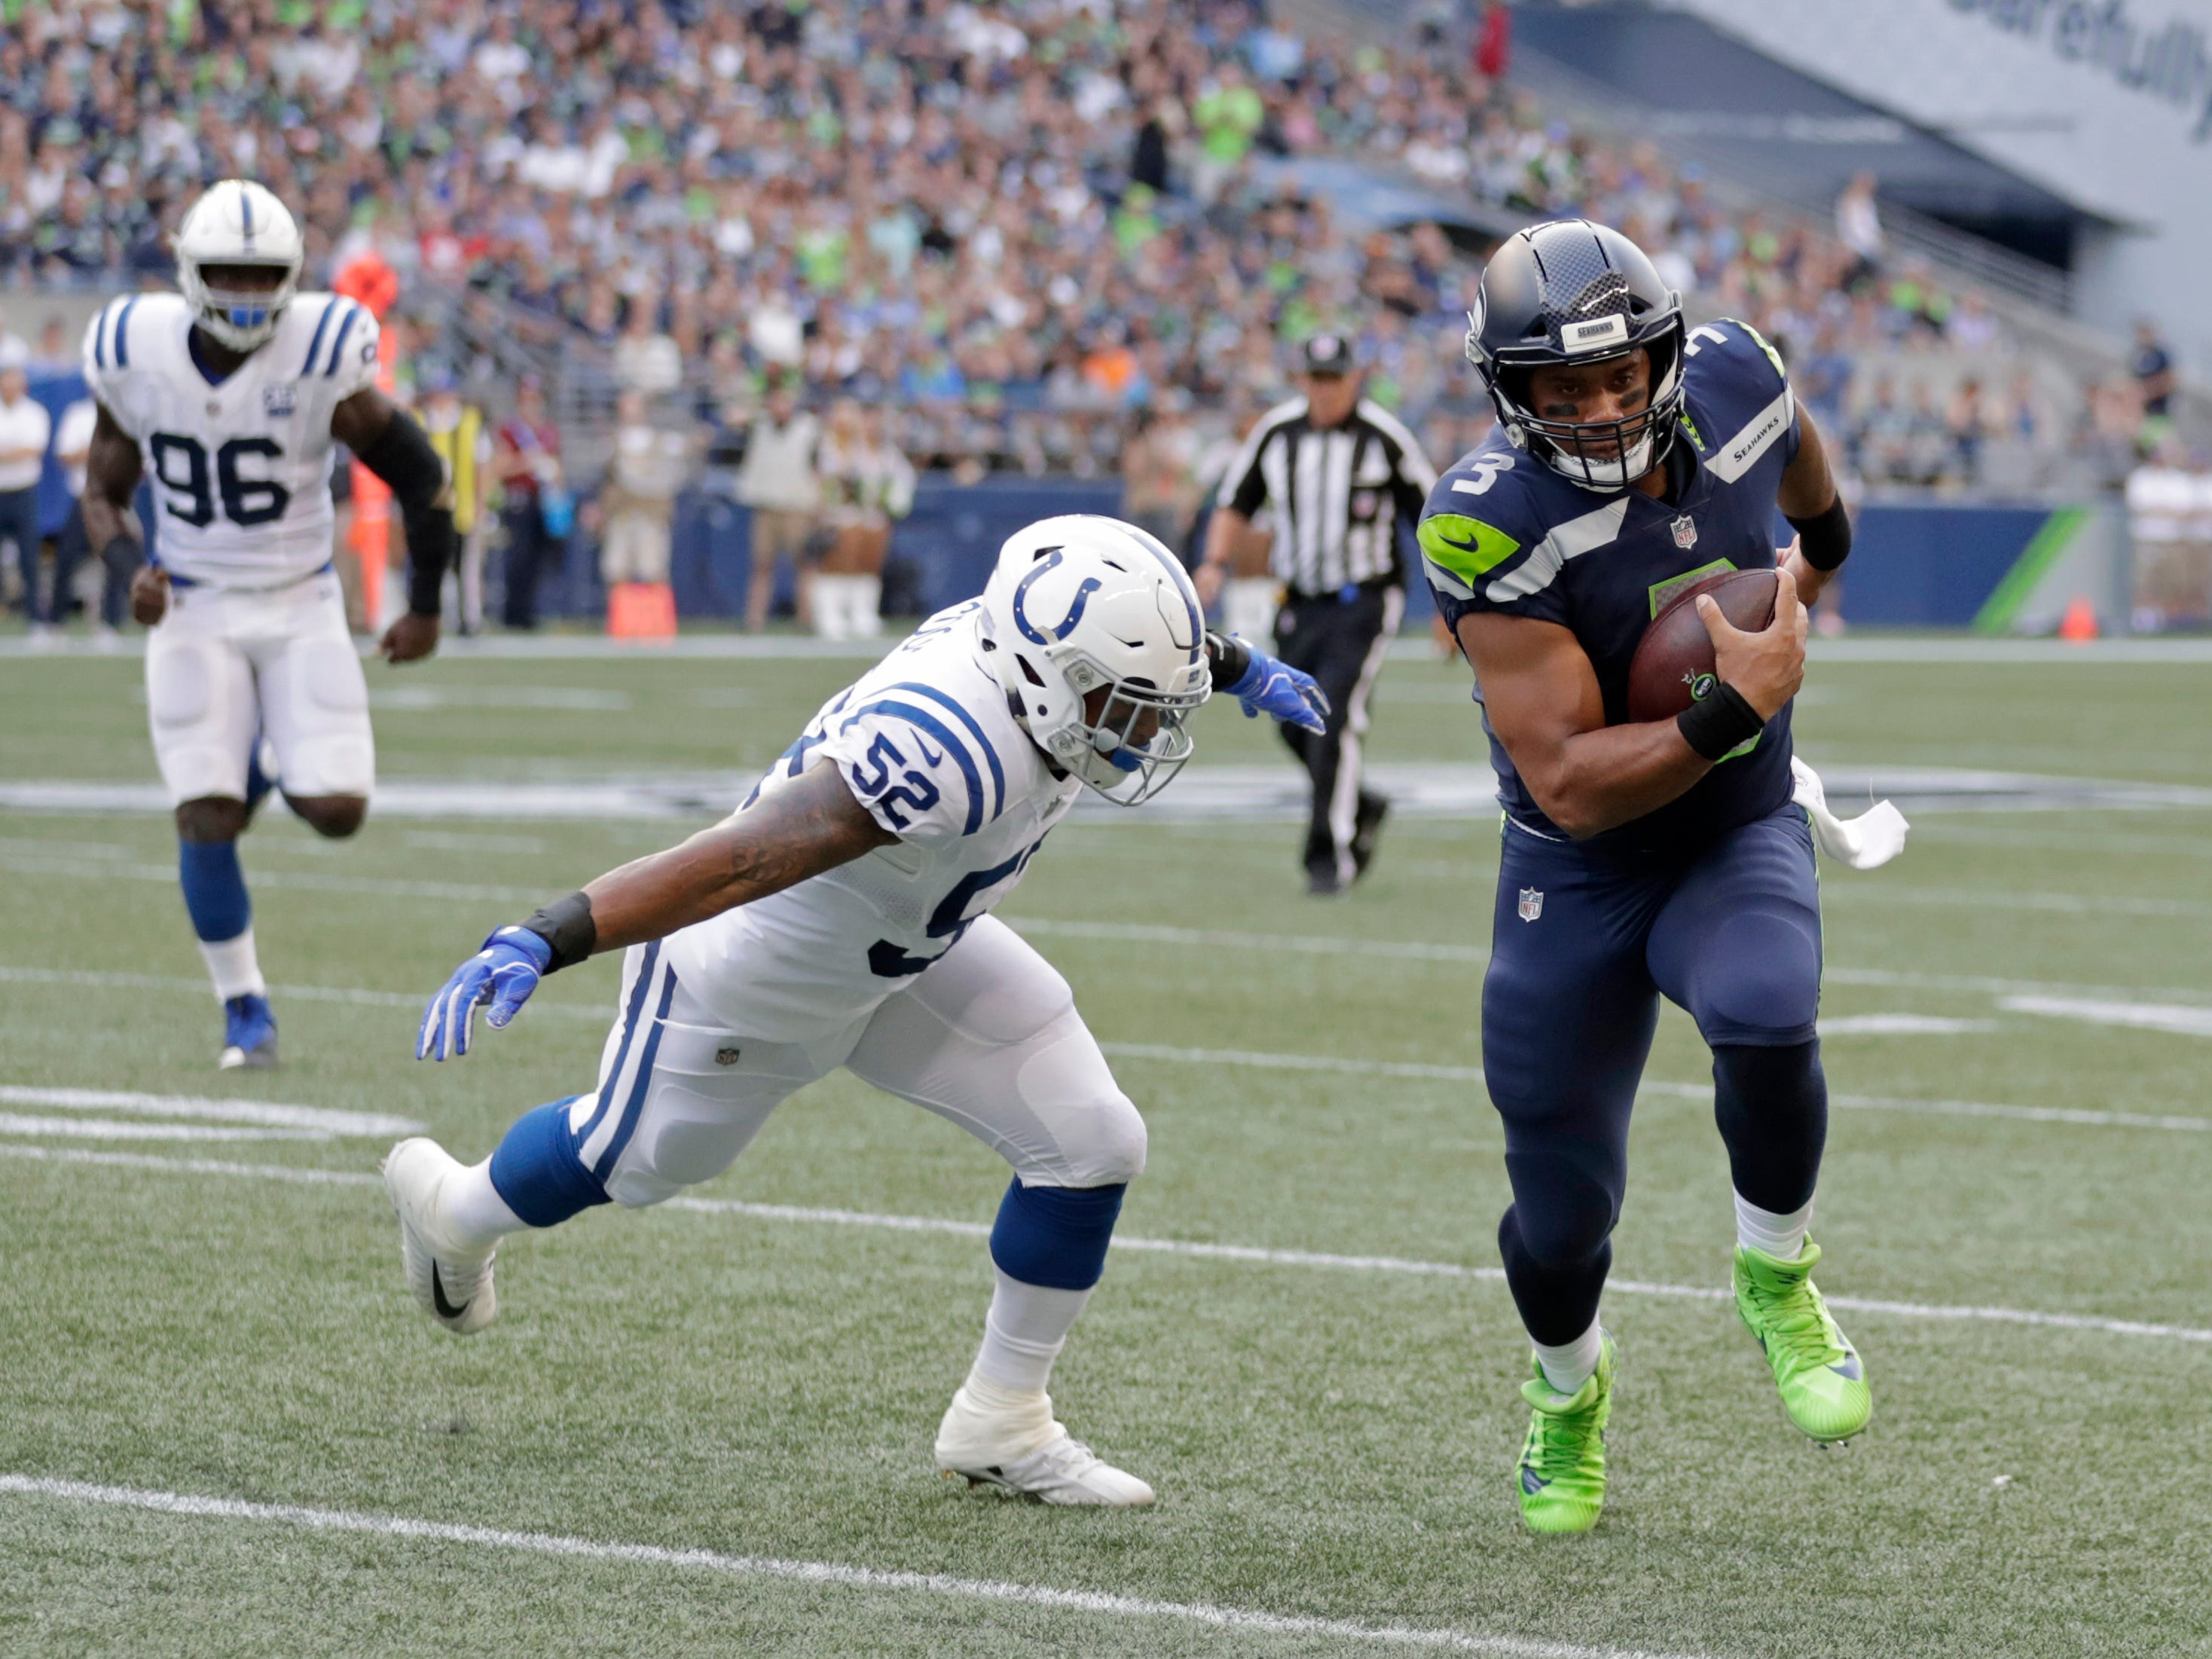 Seattle Seahawks quarterback Russell Wilson, right, scrambles with the ball as Indianapolis Colts linebacker Najee Goode (52) closes in during the first half of an NFL football preseason game, Thursday, Aug. 9, 2018, in Seattle.